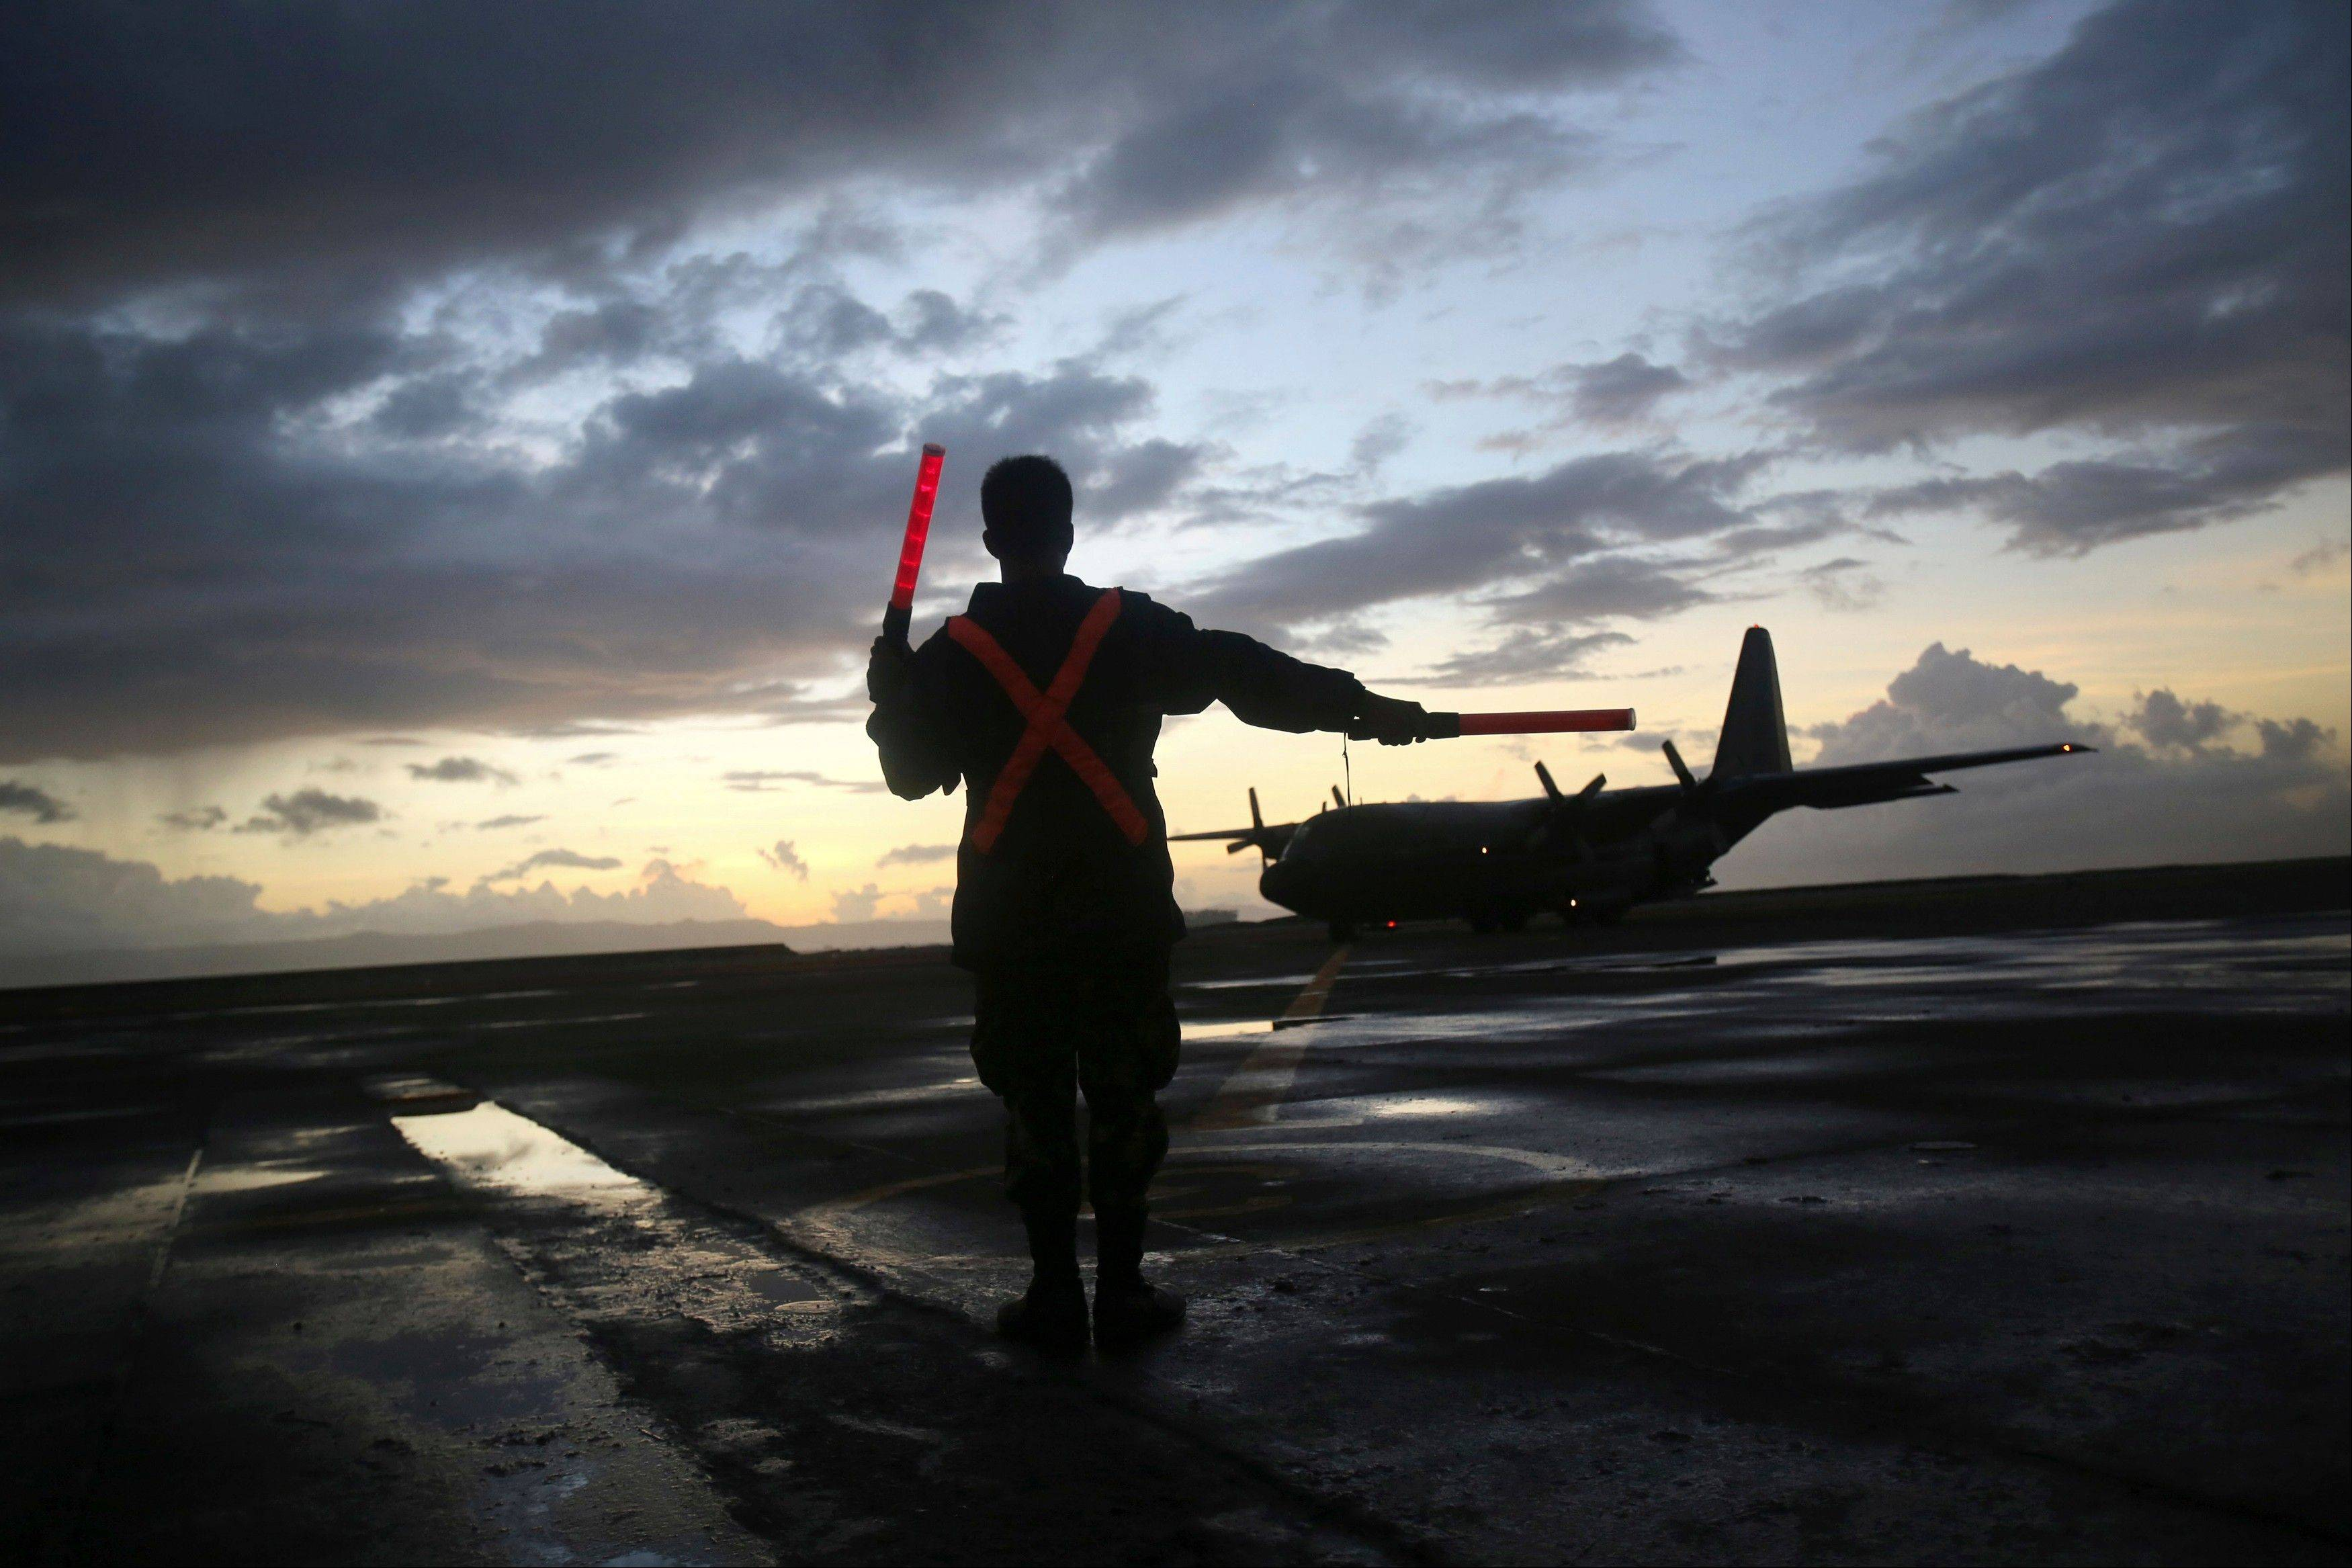 A military C-130 lands to evacuate survivors of Typhoon Haiyan at dusk, Friday, Nov. 15, 2013 in Tacloban city, Leyte province, central Philippines. Typhoon Haiyan, one of the most powerful storms on record, hit the country's eastern seaboard Nov. 8, leaving a wide swath of destruction.